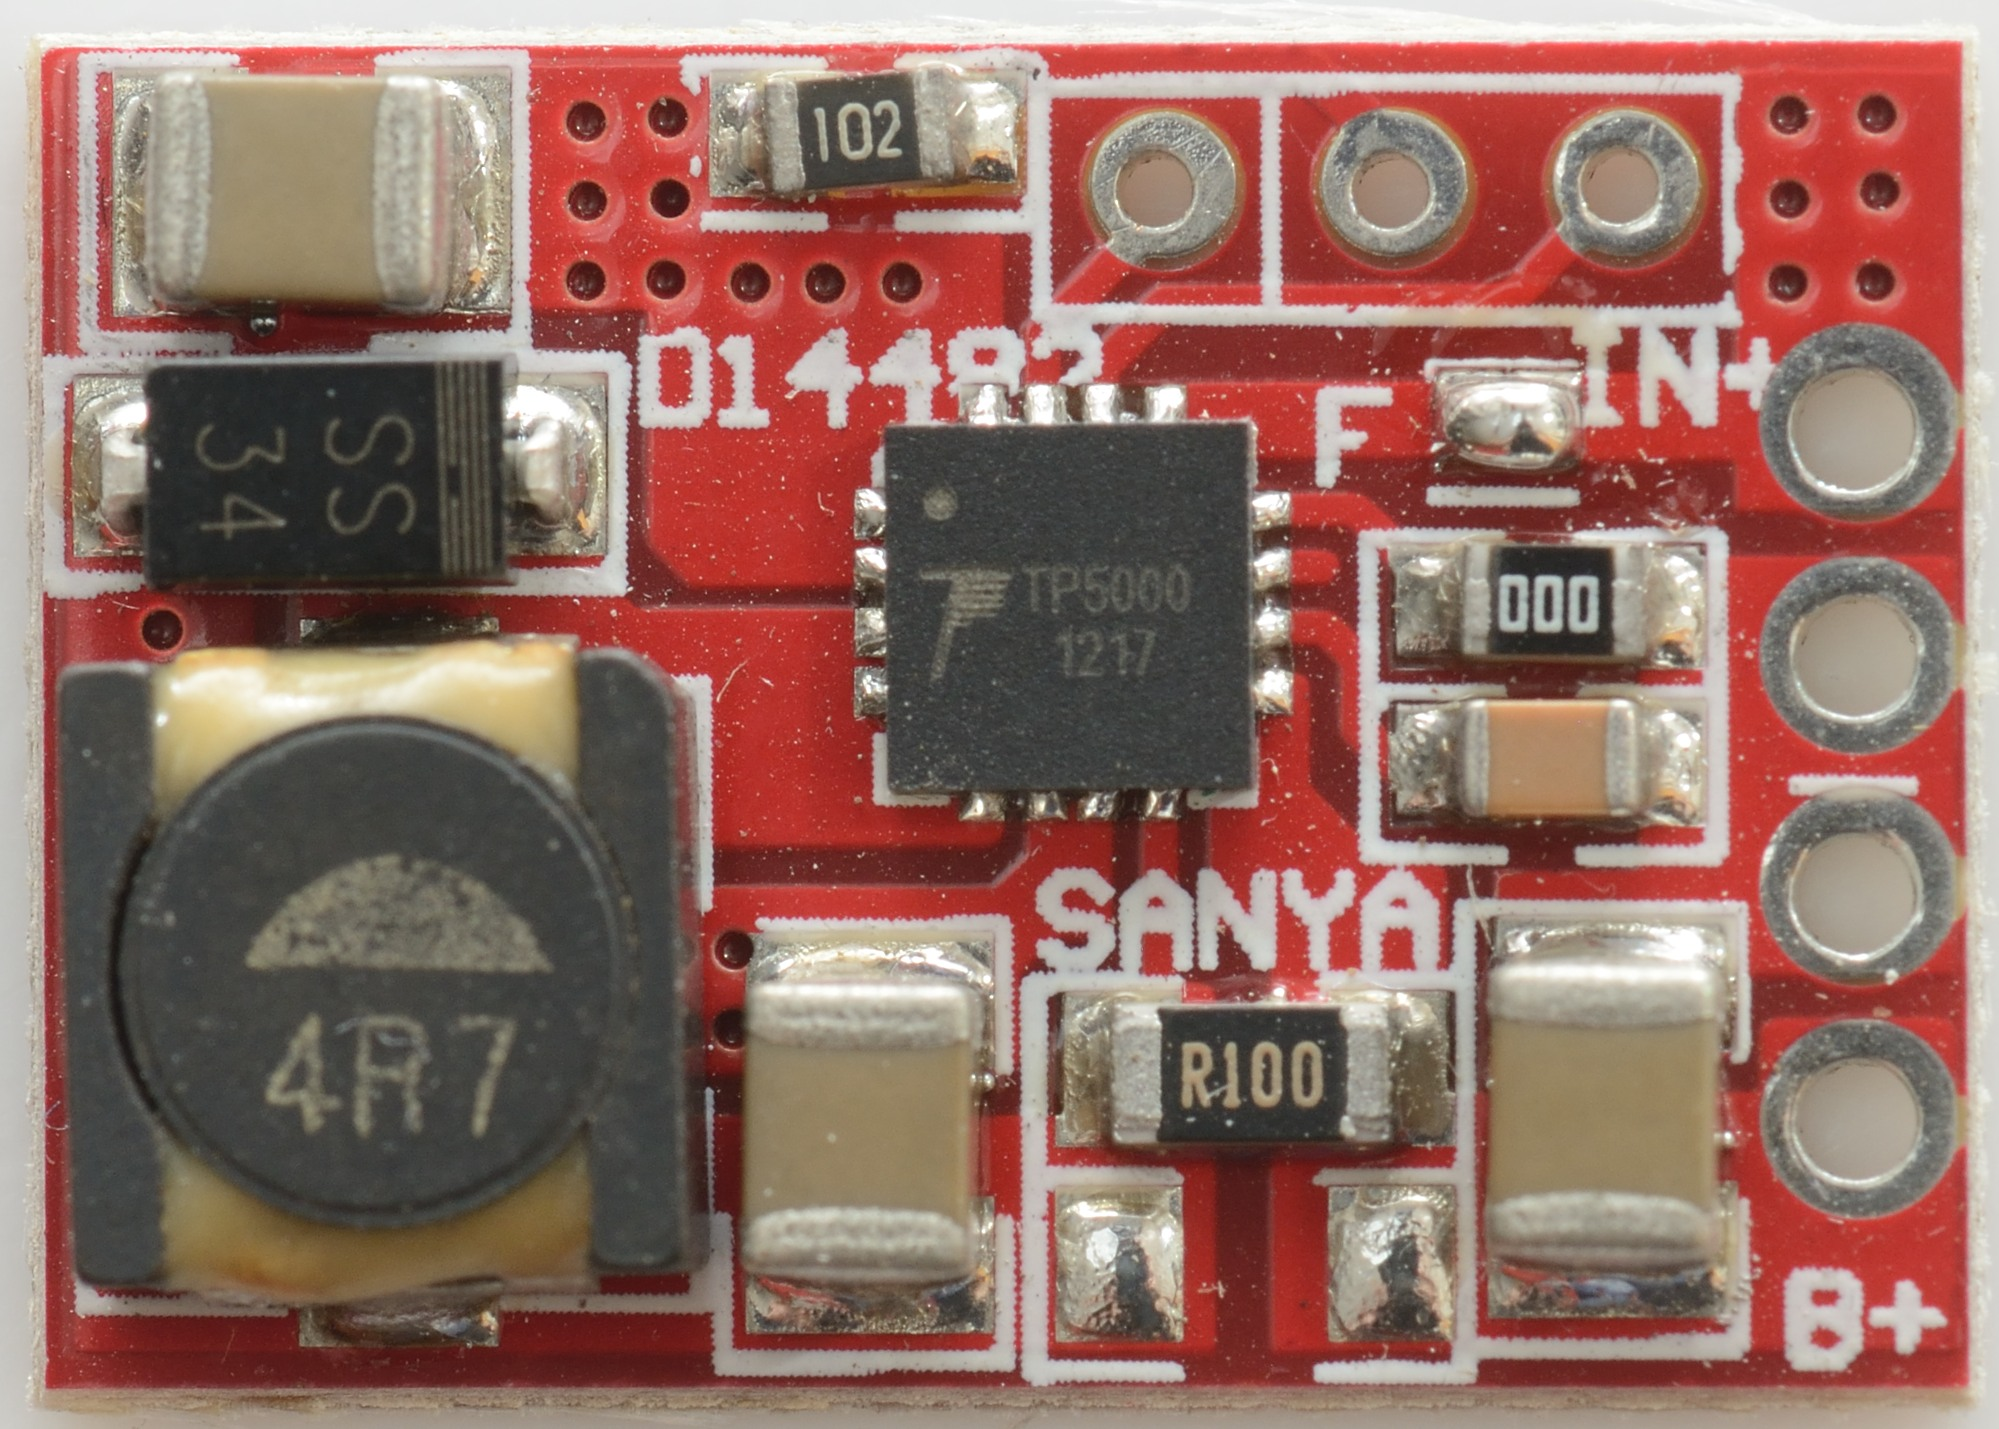 Test Review Of Charger 15a 36 42v Tp5000 What Resistor Should I Use In An Led Circuit Ebay There Is Only Components On One Side The Board Switcher Chip With Inductor Diode And Current Sense Resistors